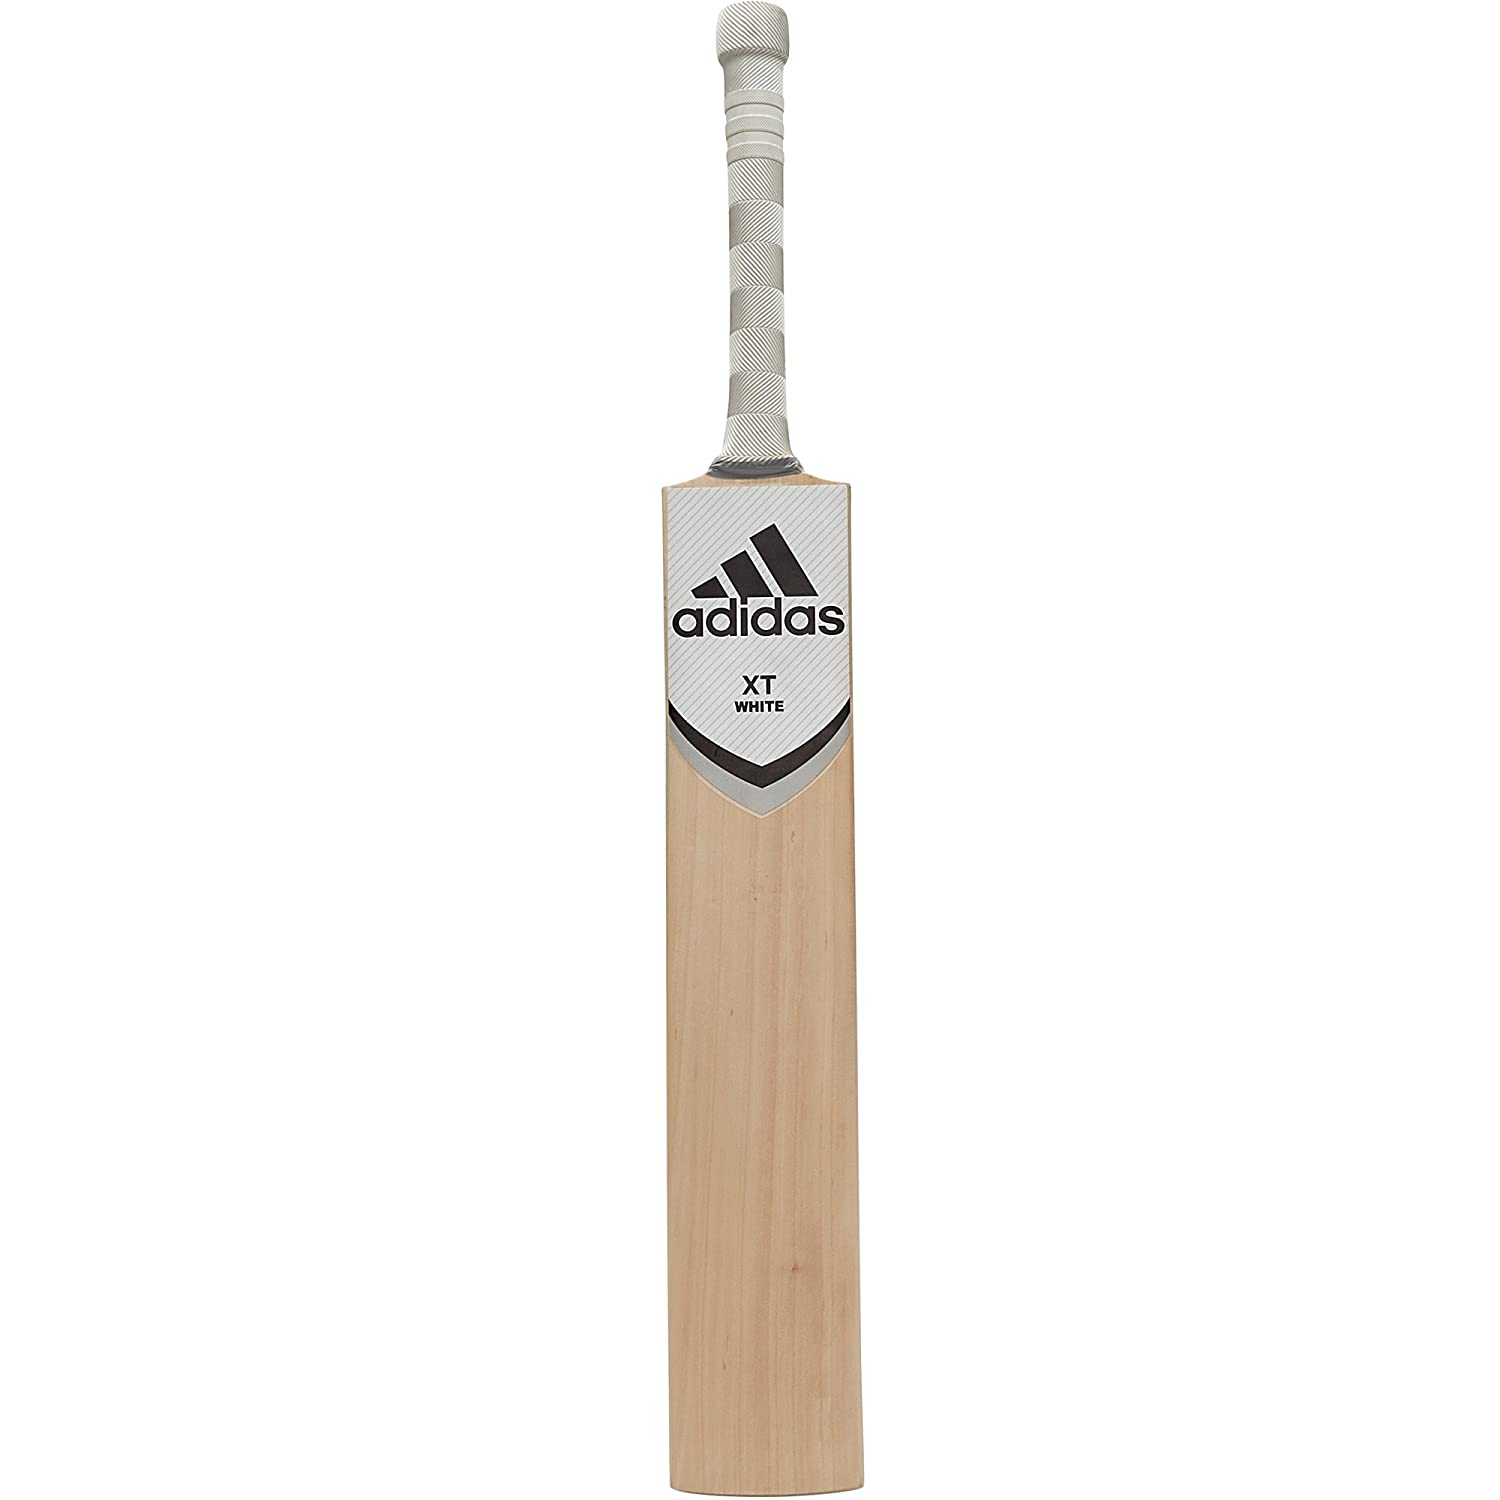 adidas XT Blanc 6.0 Junior Batte de cricket